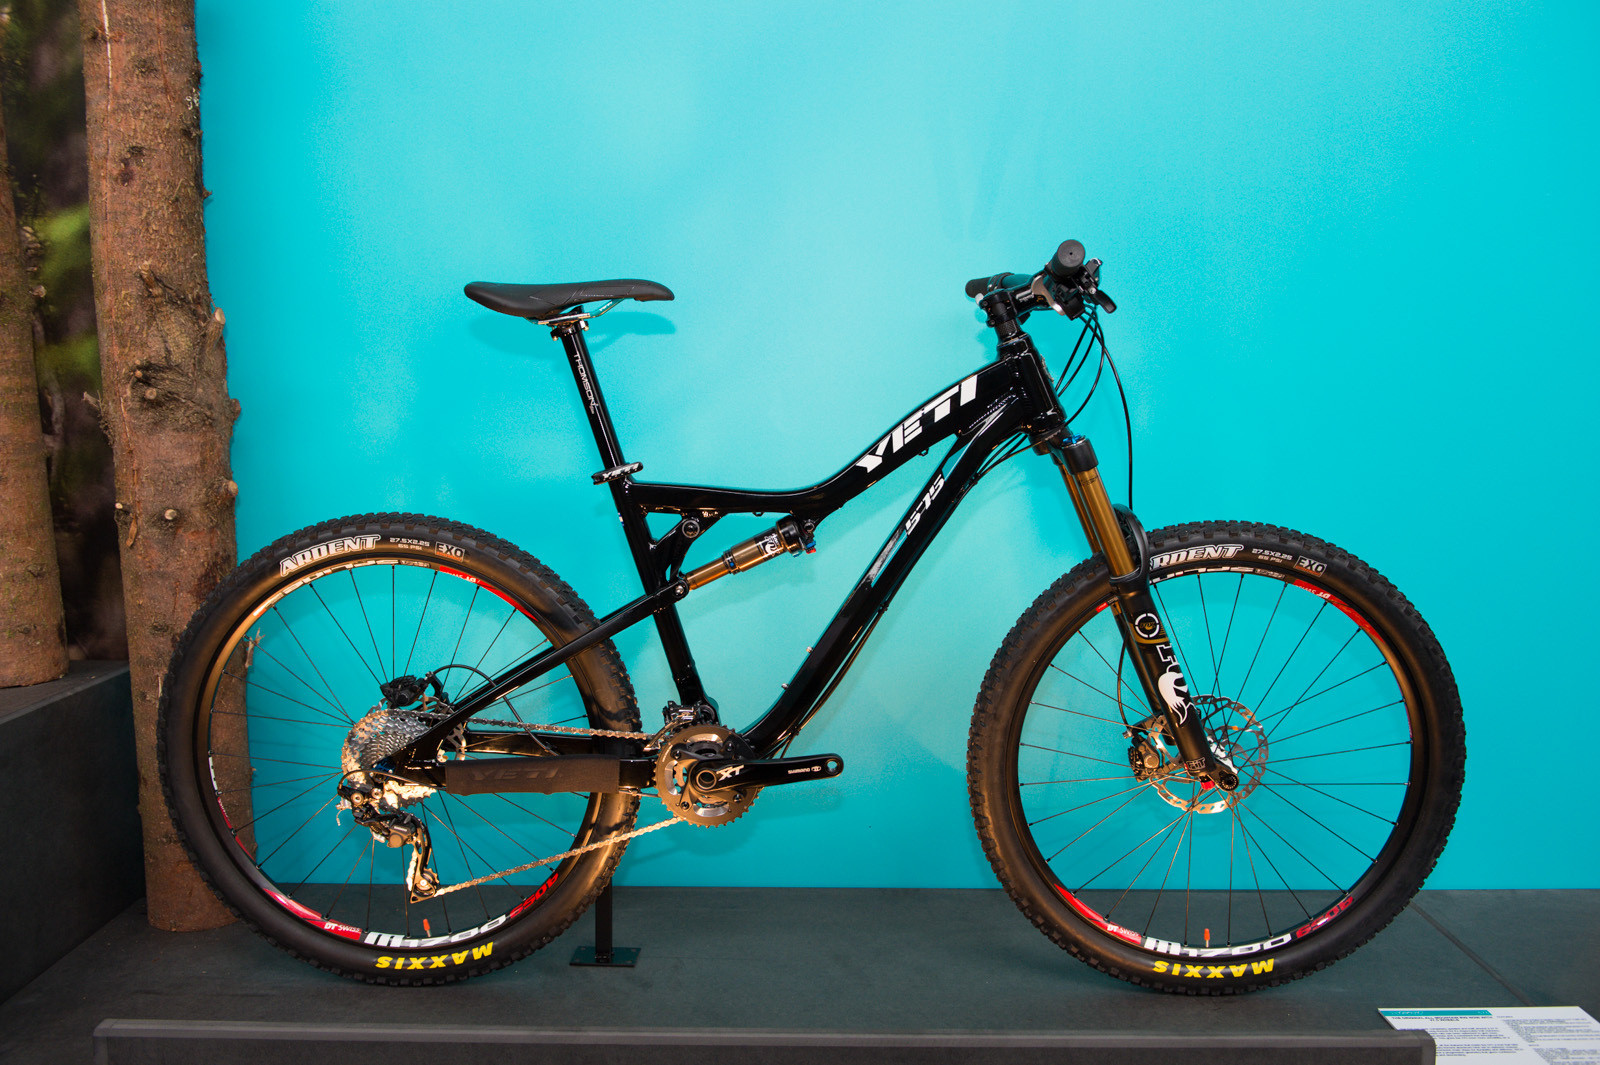 2014 Yeti 575 - Now in 27.5 - 2014 Trail, All-Mountain & Enduro Bikes at Eurobike 2013 - Mountain Biking Pictures - Vital MTB